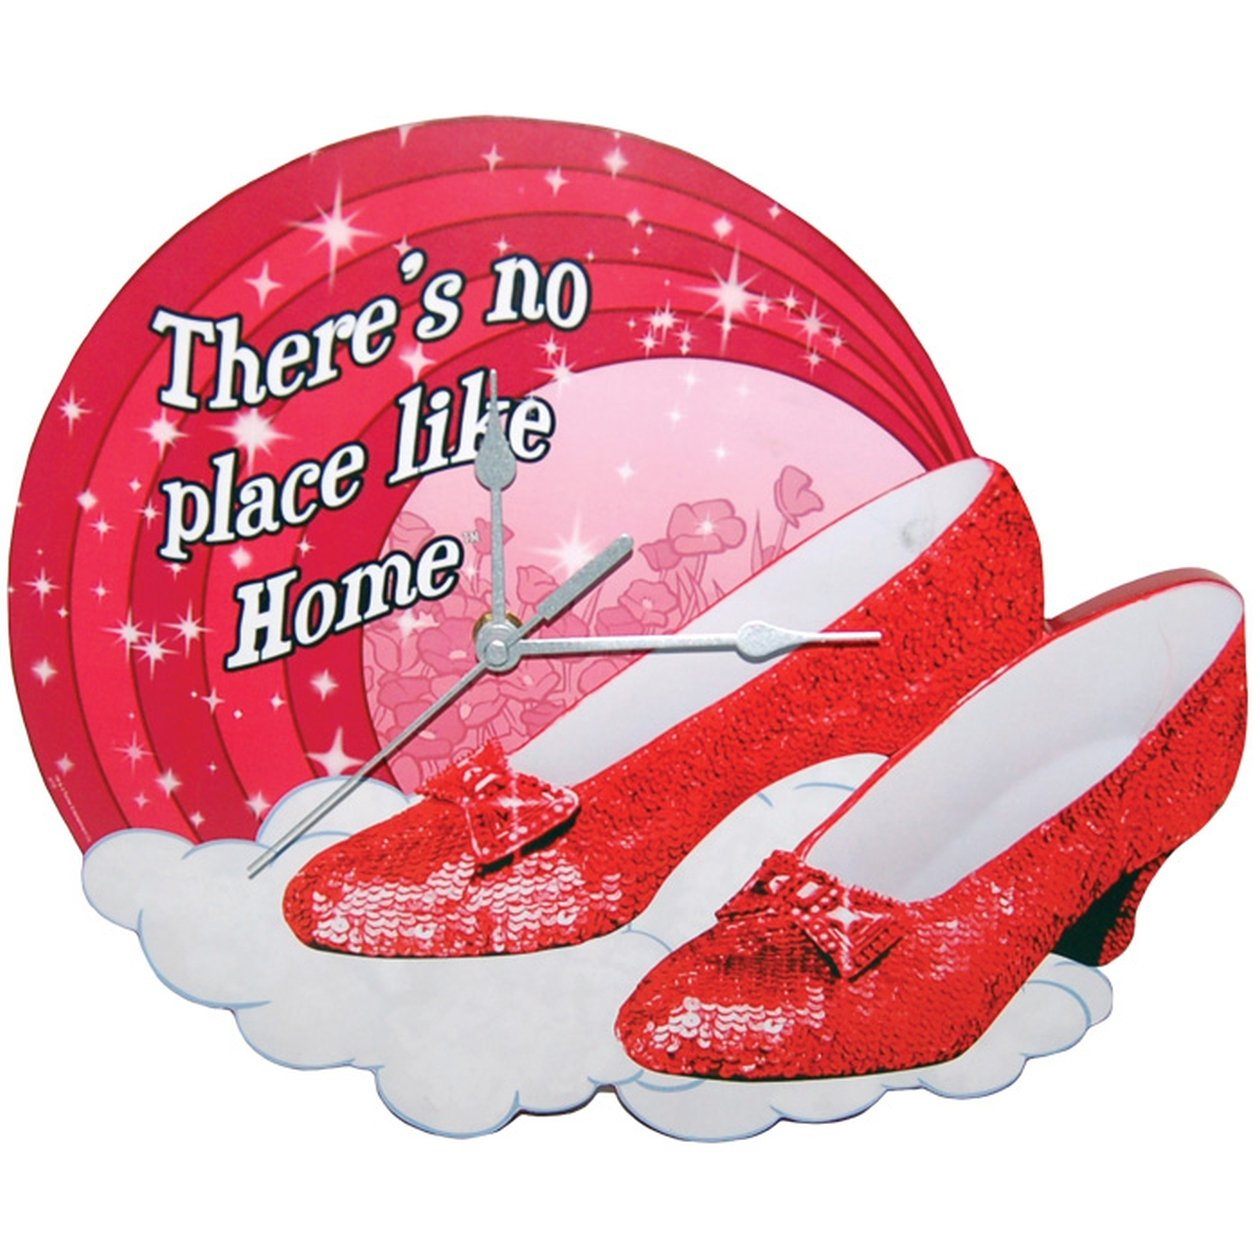 Westland Giftware The Wizard of Oz MDF Wood Wall Clock, 11.25-Inch, Ruby Slippers